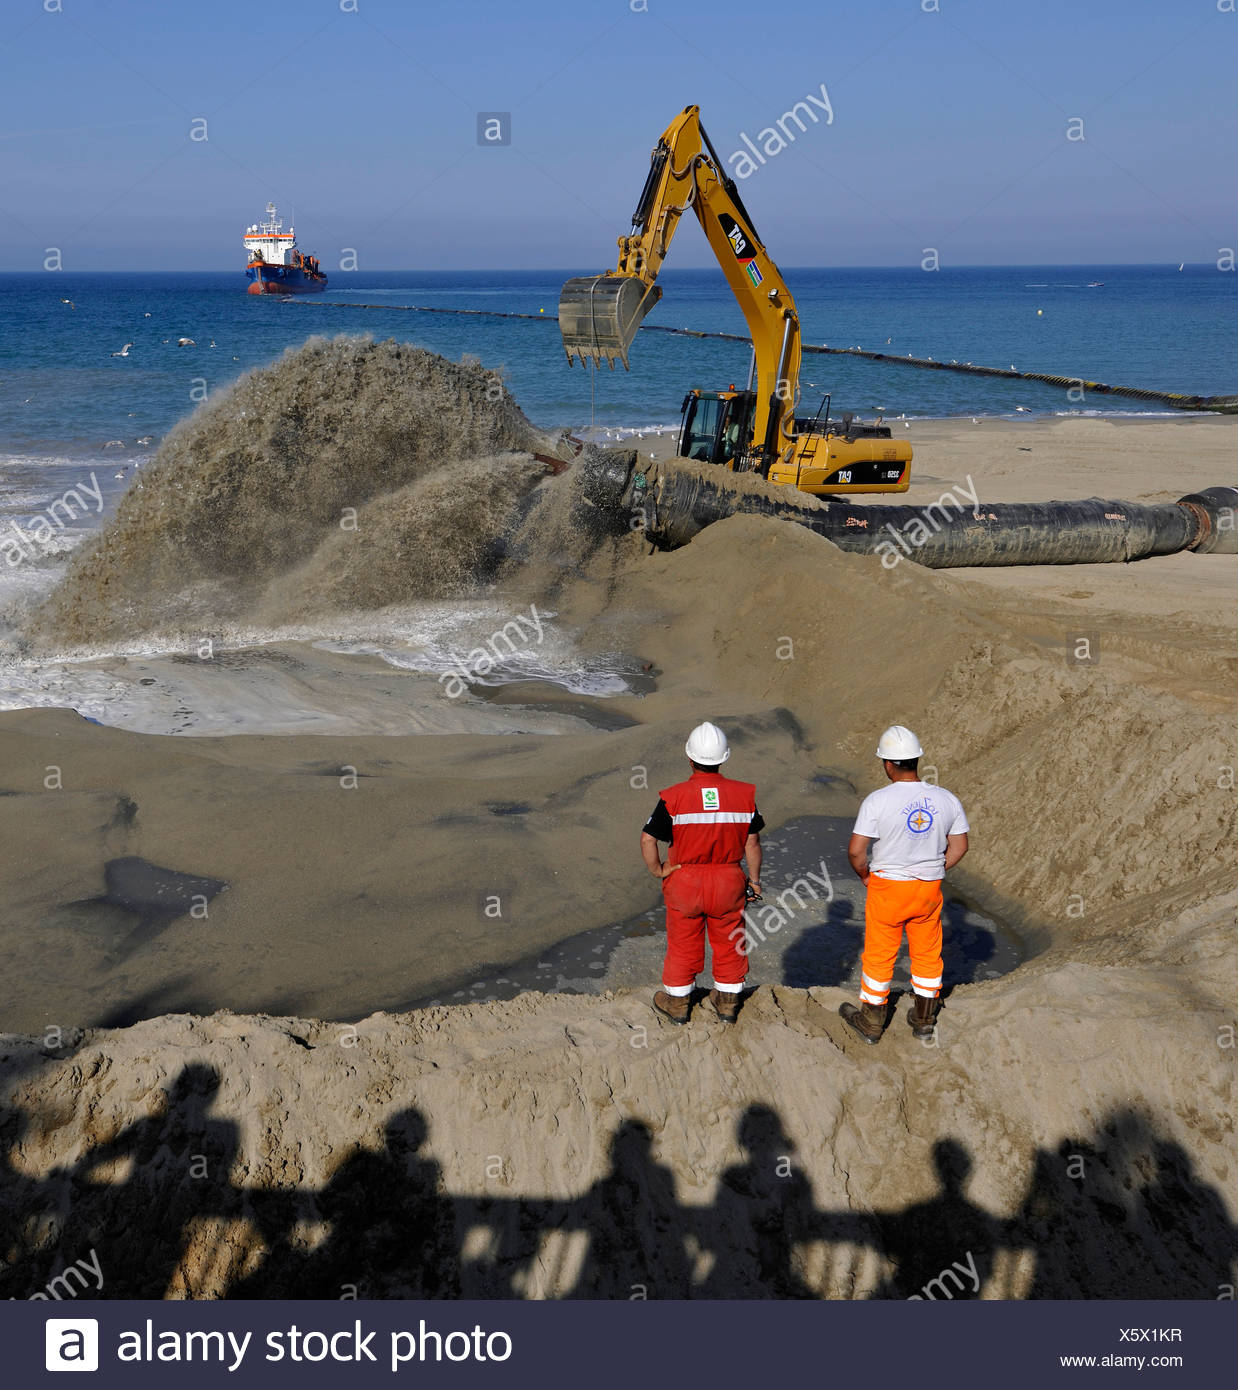 Onlookers watching while a dredger is pumping sand through a hose onto a beach for beach nourishment or beach replenishment - Stock Image